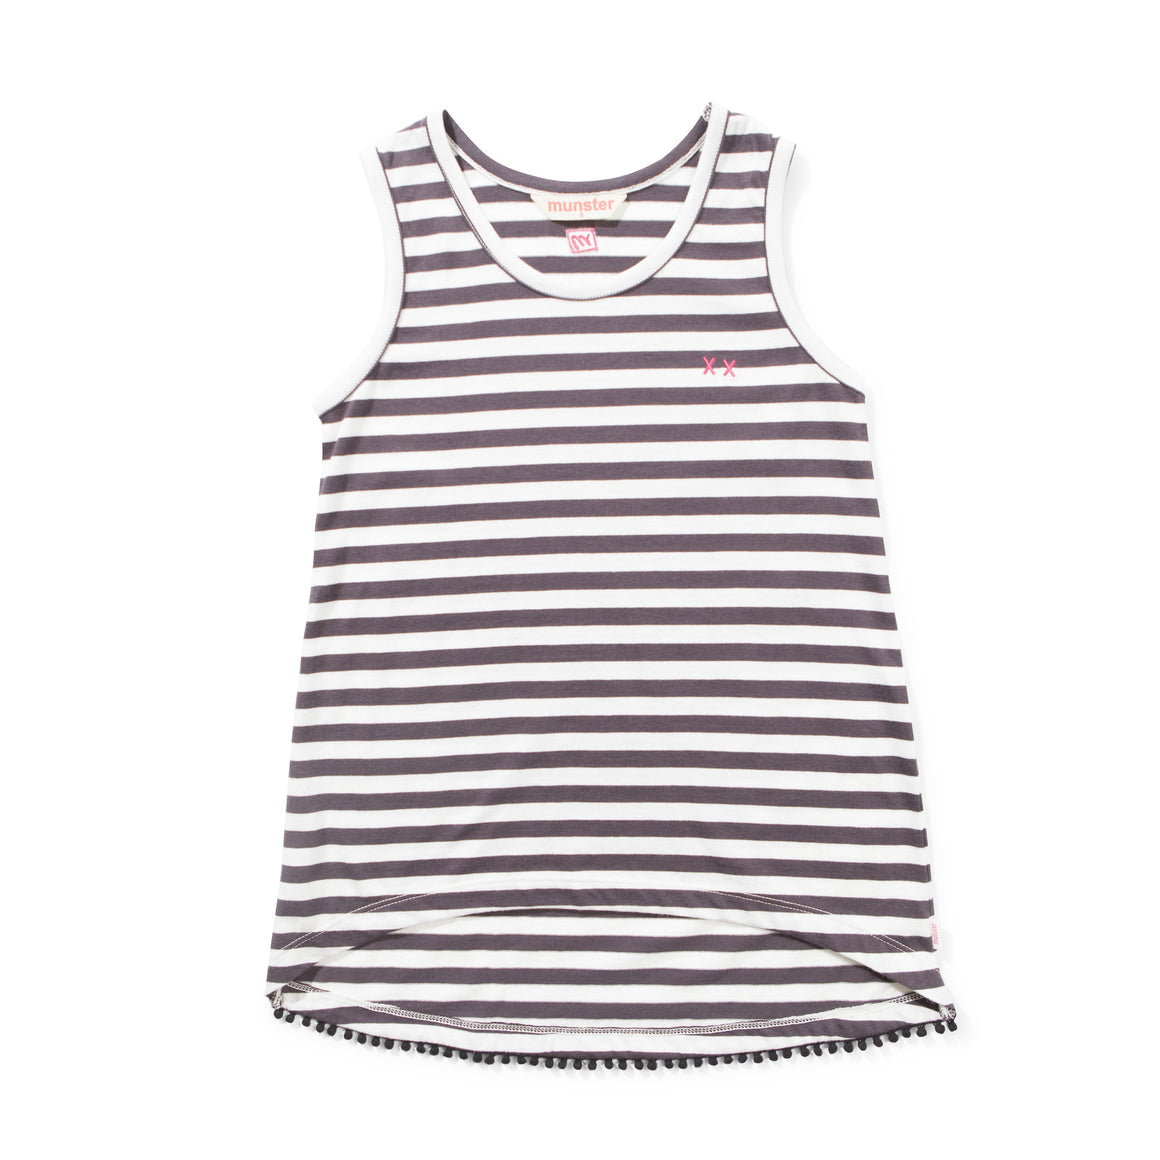 Missie Munster - Stripe Triple Crosses Tee | Tops & T-Shirts | Bon Bon Tresor